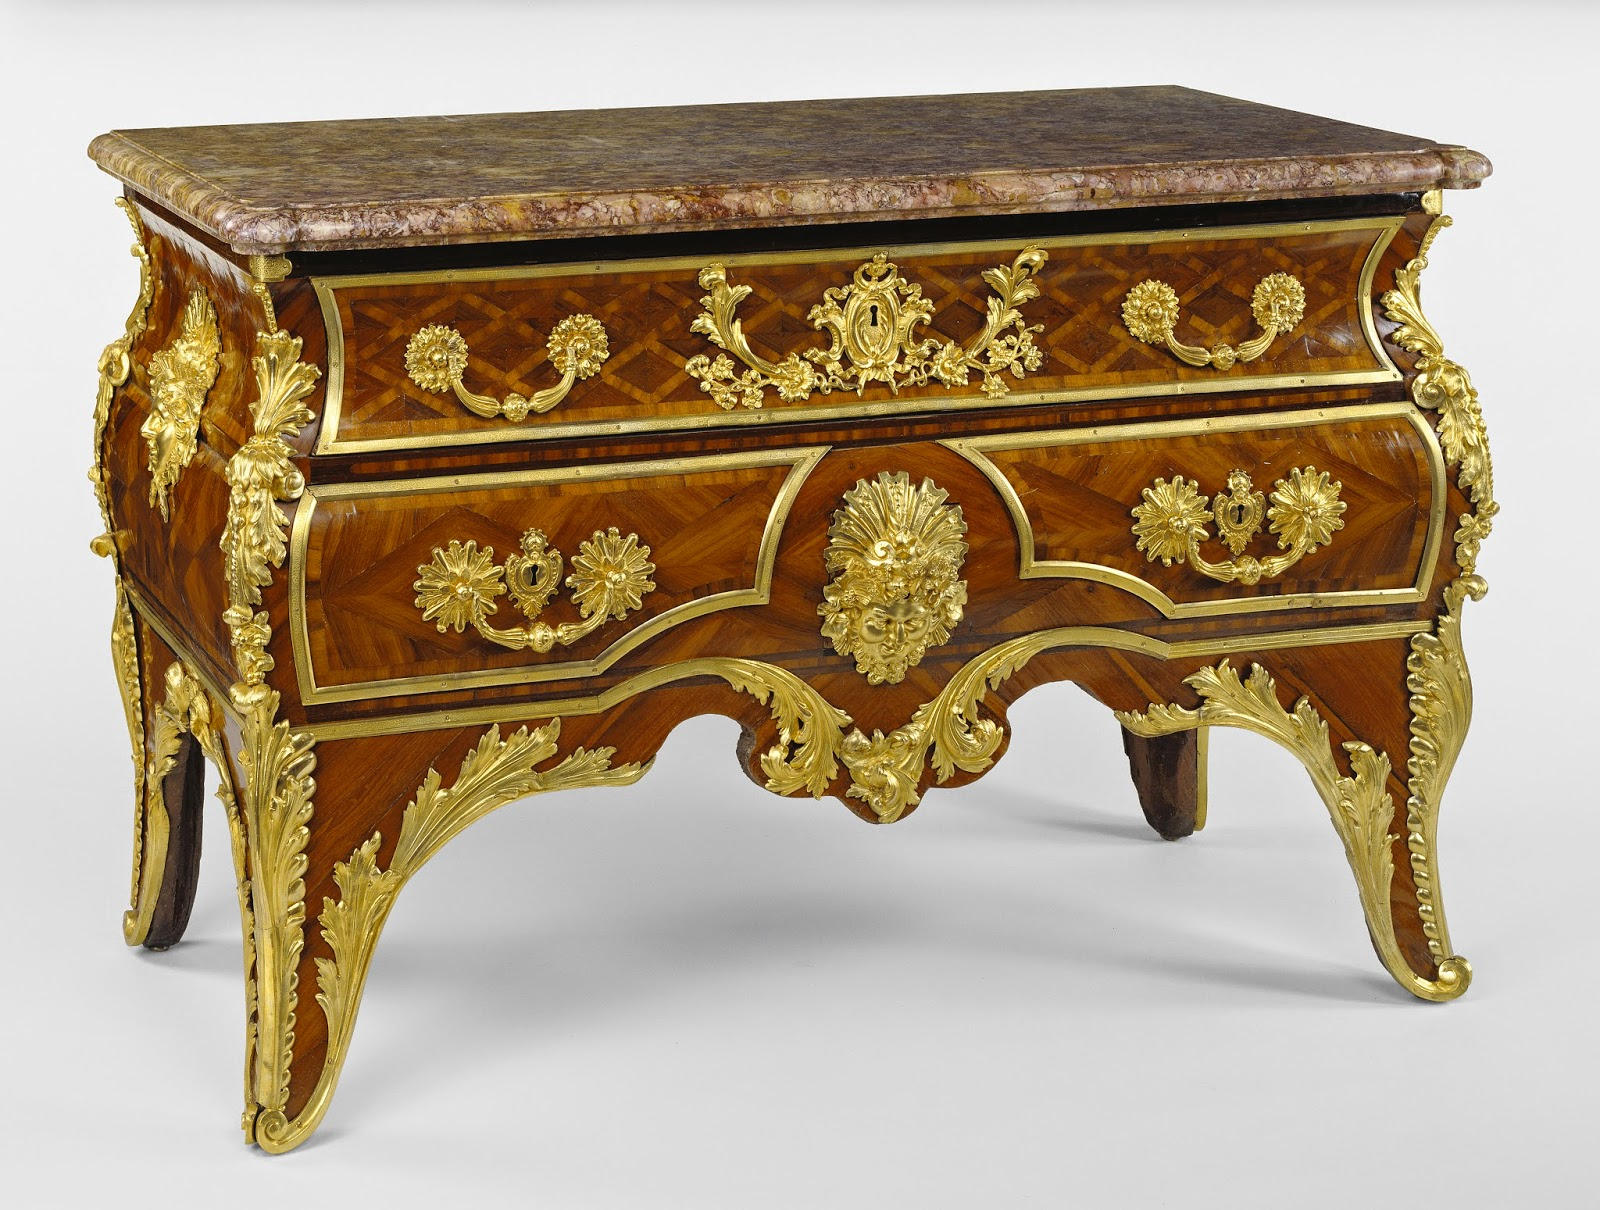 "Commode, Attributed to the Workshop of André-Charles Boulle and restored in the 1740s by Charles-Michel Cochois (French, died 1764, master 1734),about 1710 - 1715, Oak and fir veneered with cururu and bloodwood; gilt-bronze mounts; ""brocatelle violette du Jura"" marble top"